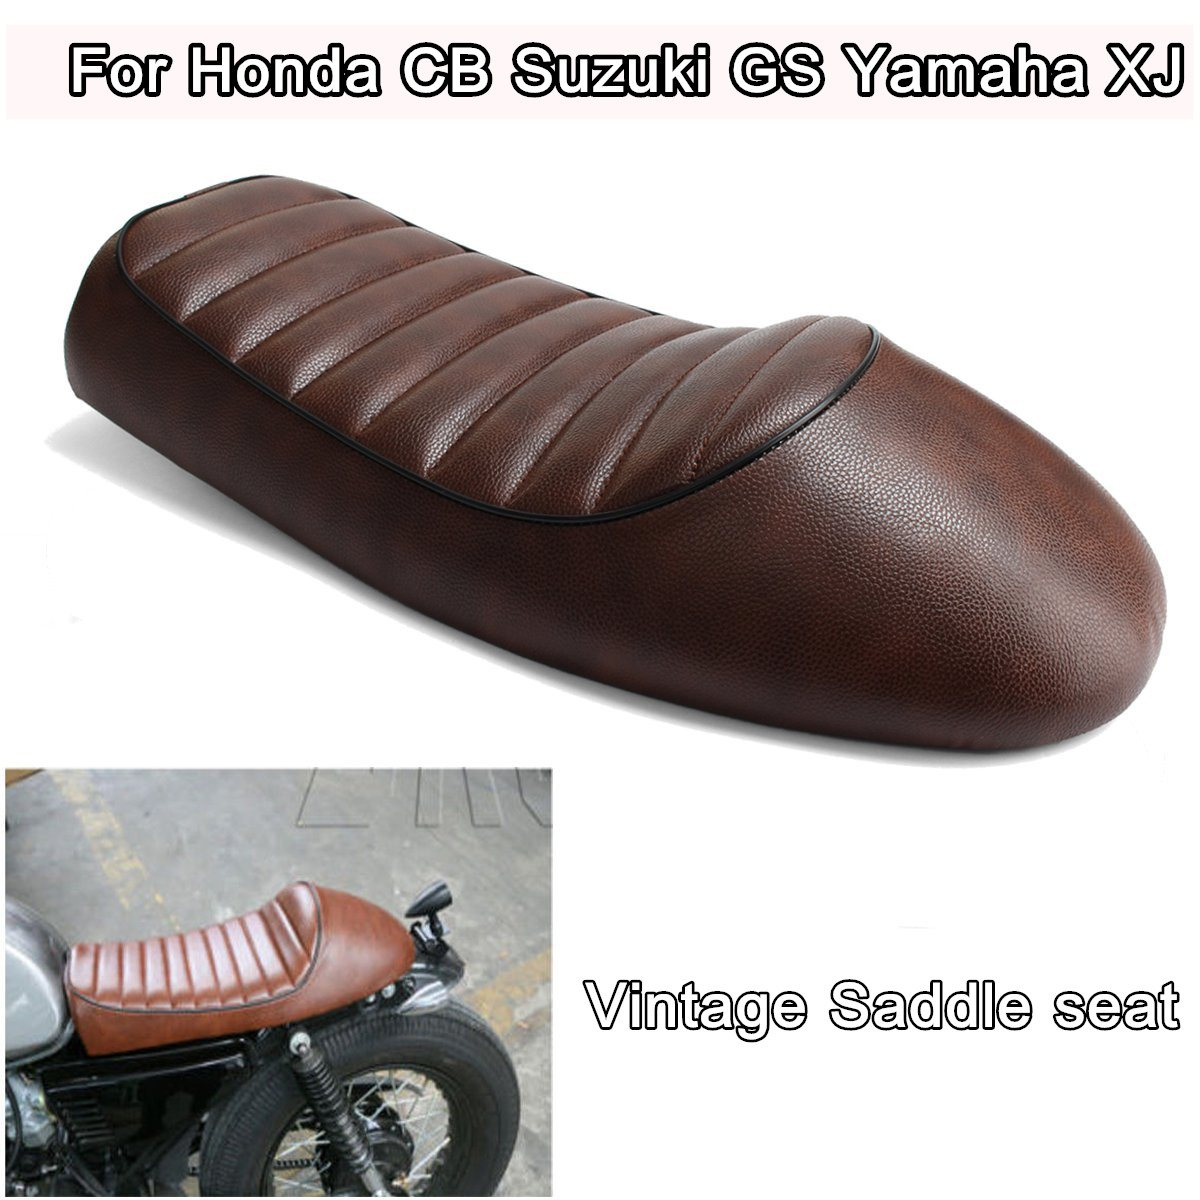 Brown Motorcycle Cafe Racer Seat Vintage Saddle For Honda CB Suzuki For GS For Yamaha XJ